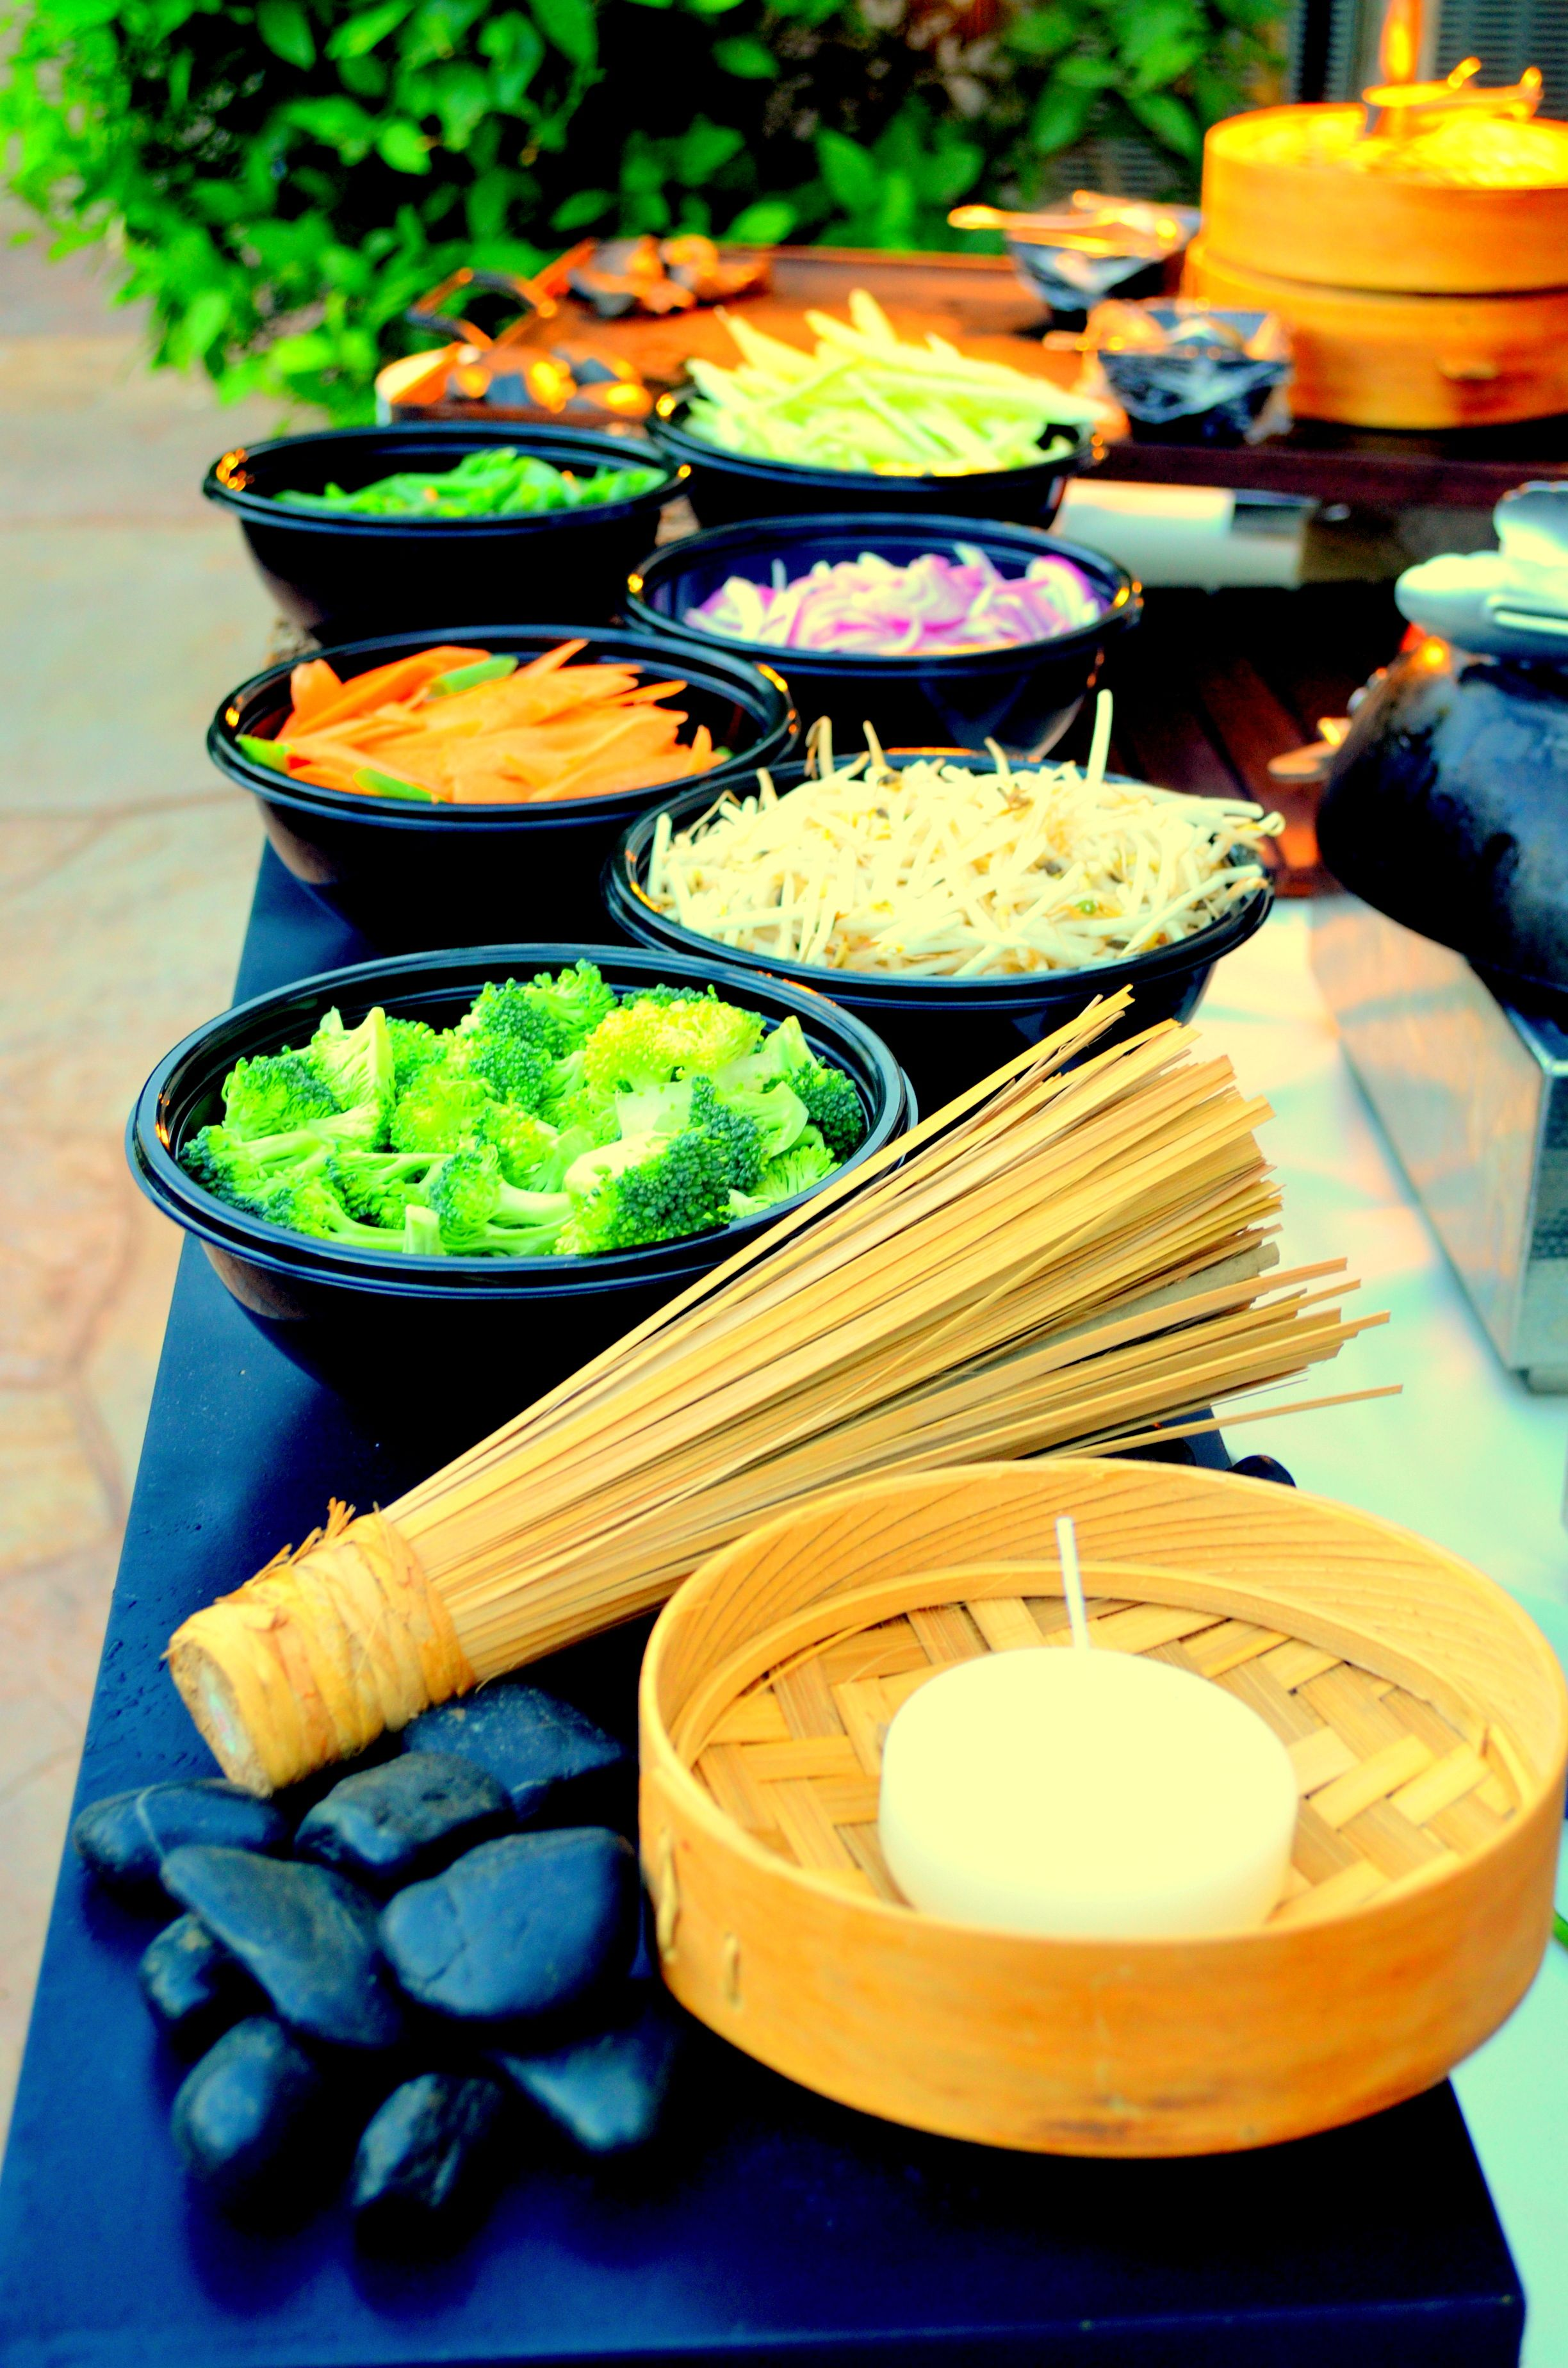 A Chef Attended Stir Fry Noodles Action Station Food And